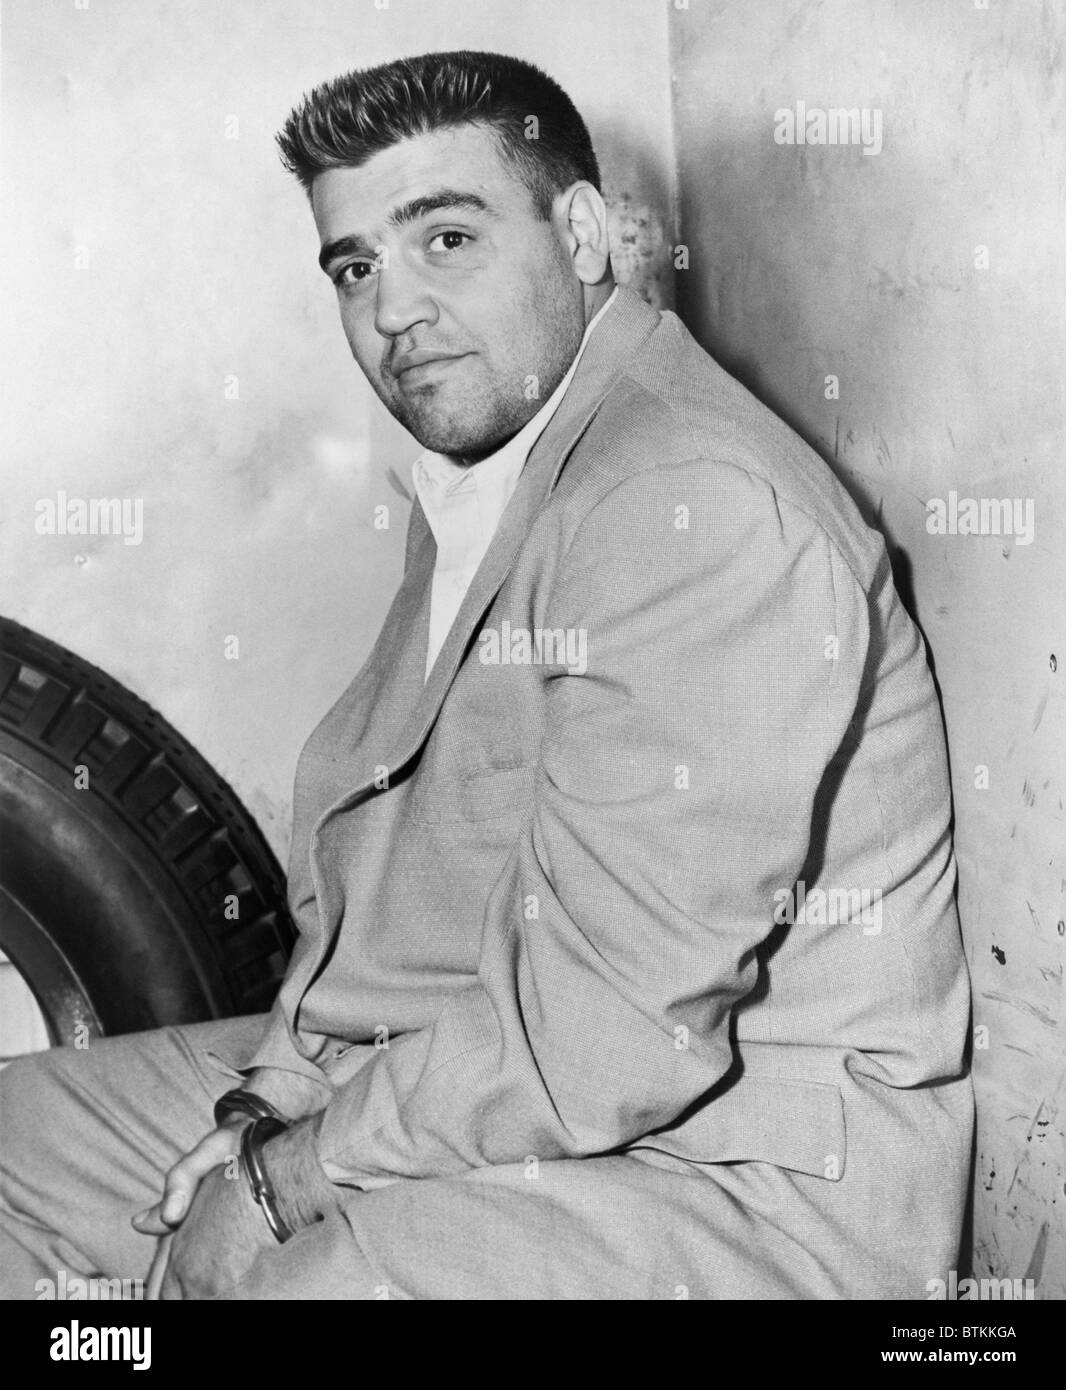 Vincent Gigante (1928-2002), future boss of the Genovese crime family, in police custody for a 1957 shooting. In - Stock Image